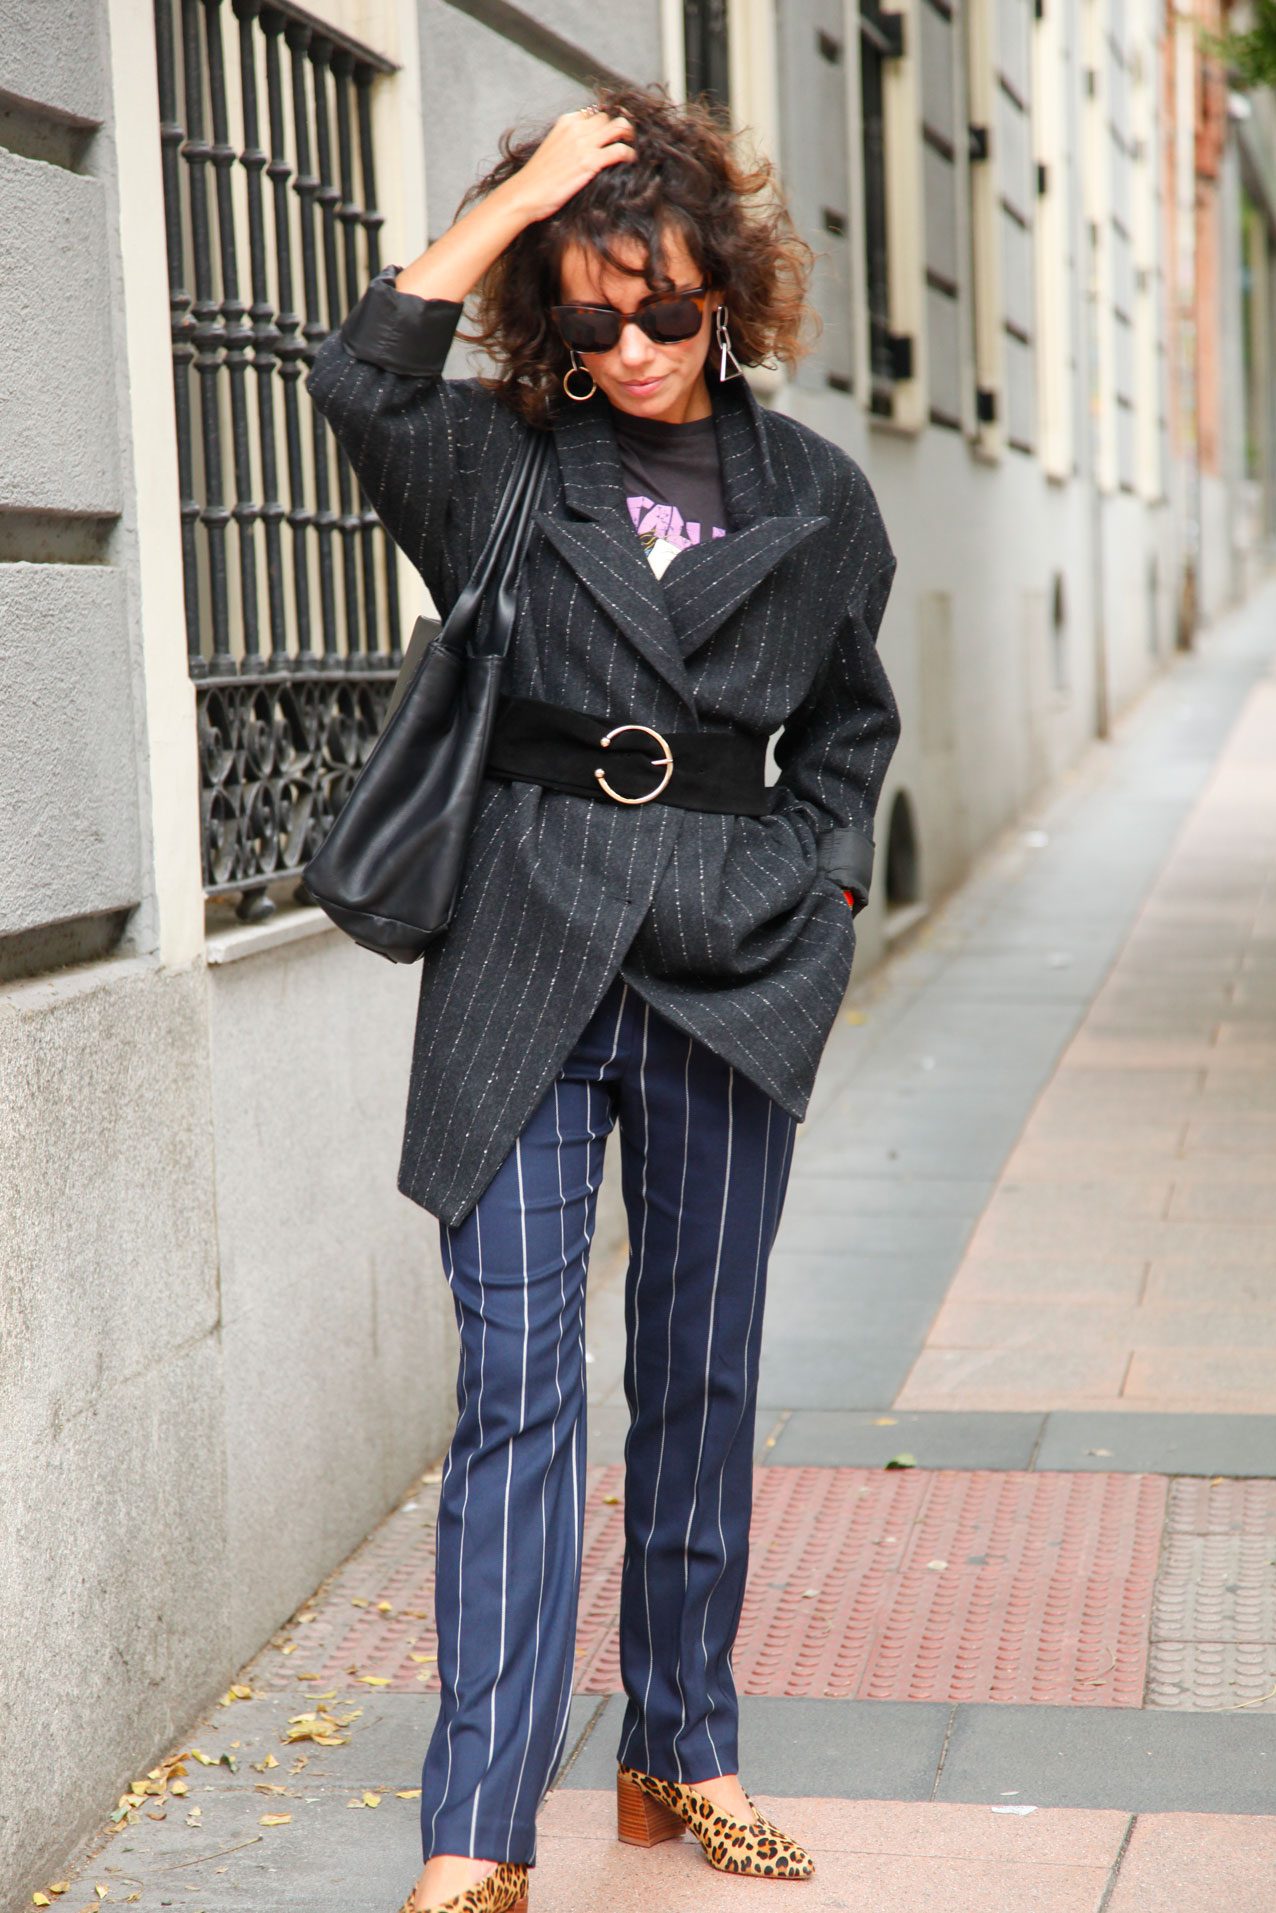 le-muy-mogambo-bag-leopardo-and-siplomatic-metallica-shirt-cool-lemonade-streetstyle10